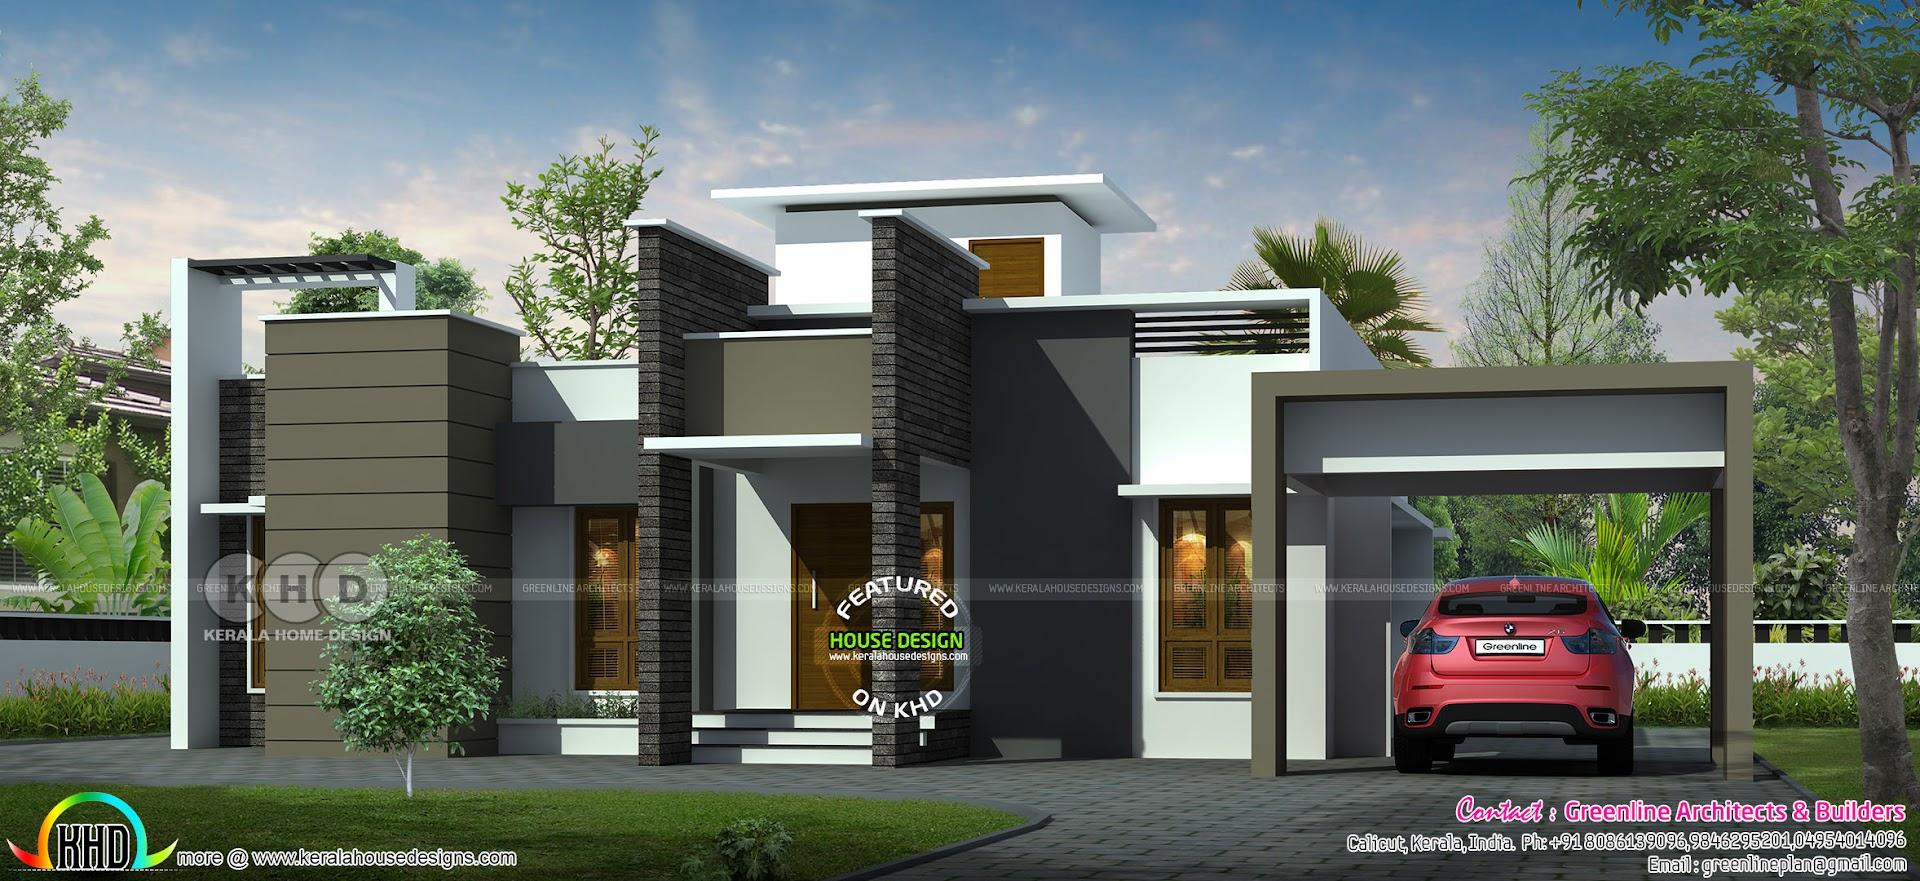 1888 Sq Ft 3 Bedroom Flat Roof Modern House Kerala Home Design Bloglovin